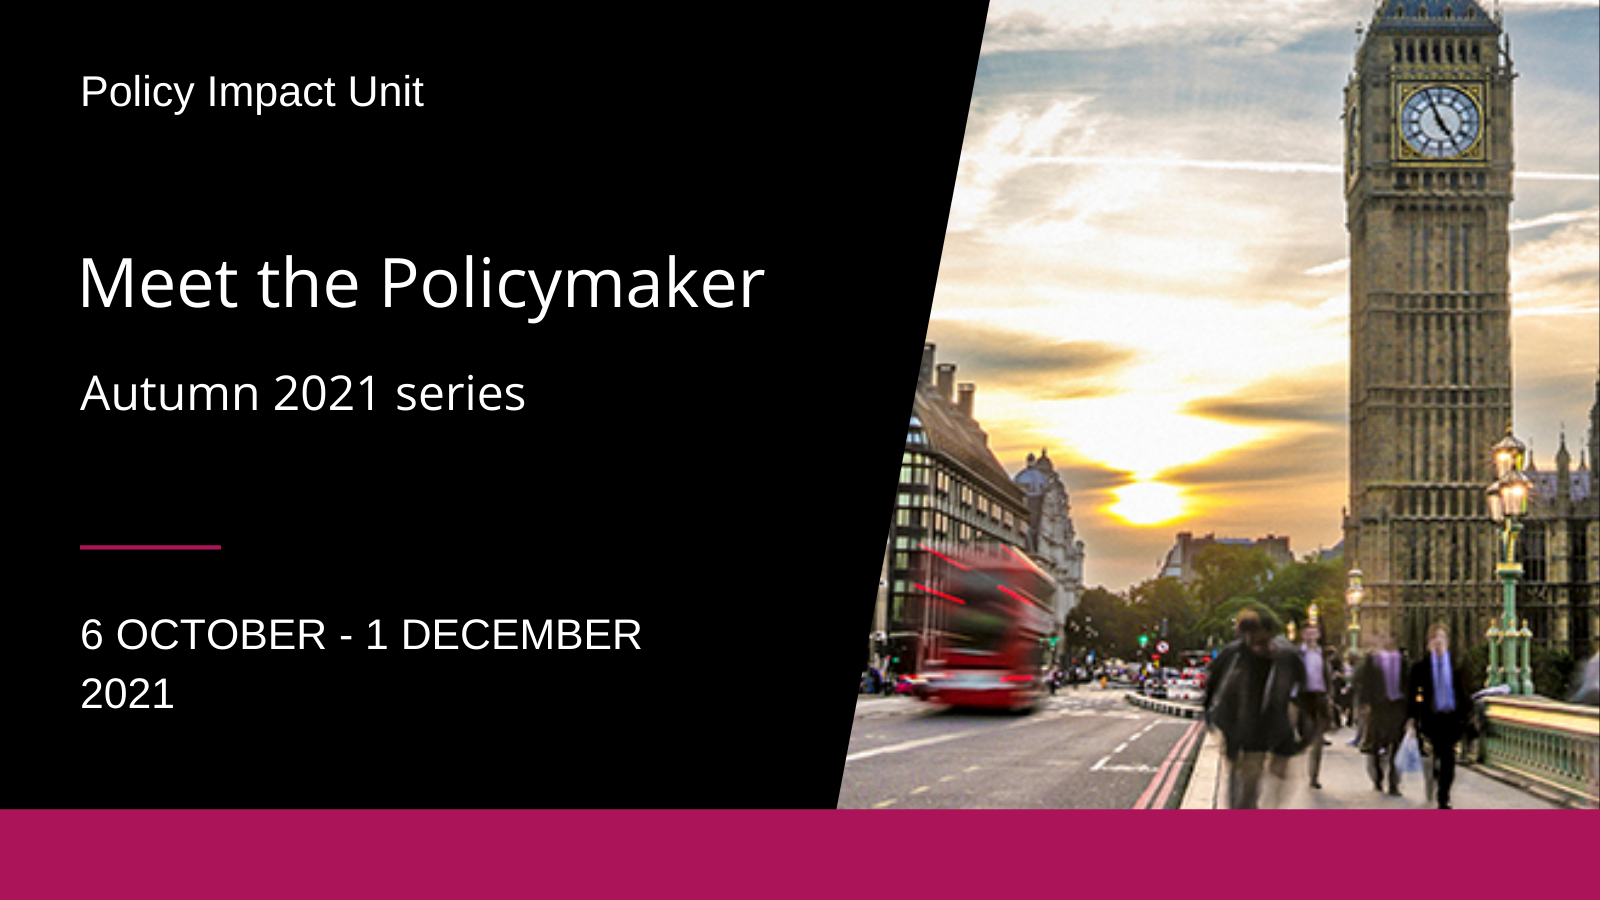 Series image showing parliament, reading Meet the Policymaker 2021, Autumn 2021, 6 October to 1 December 2021